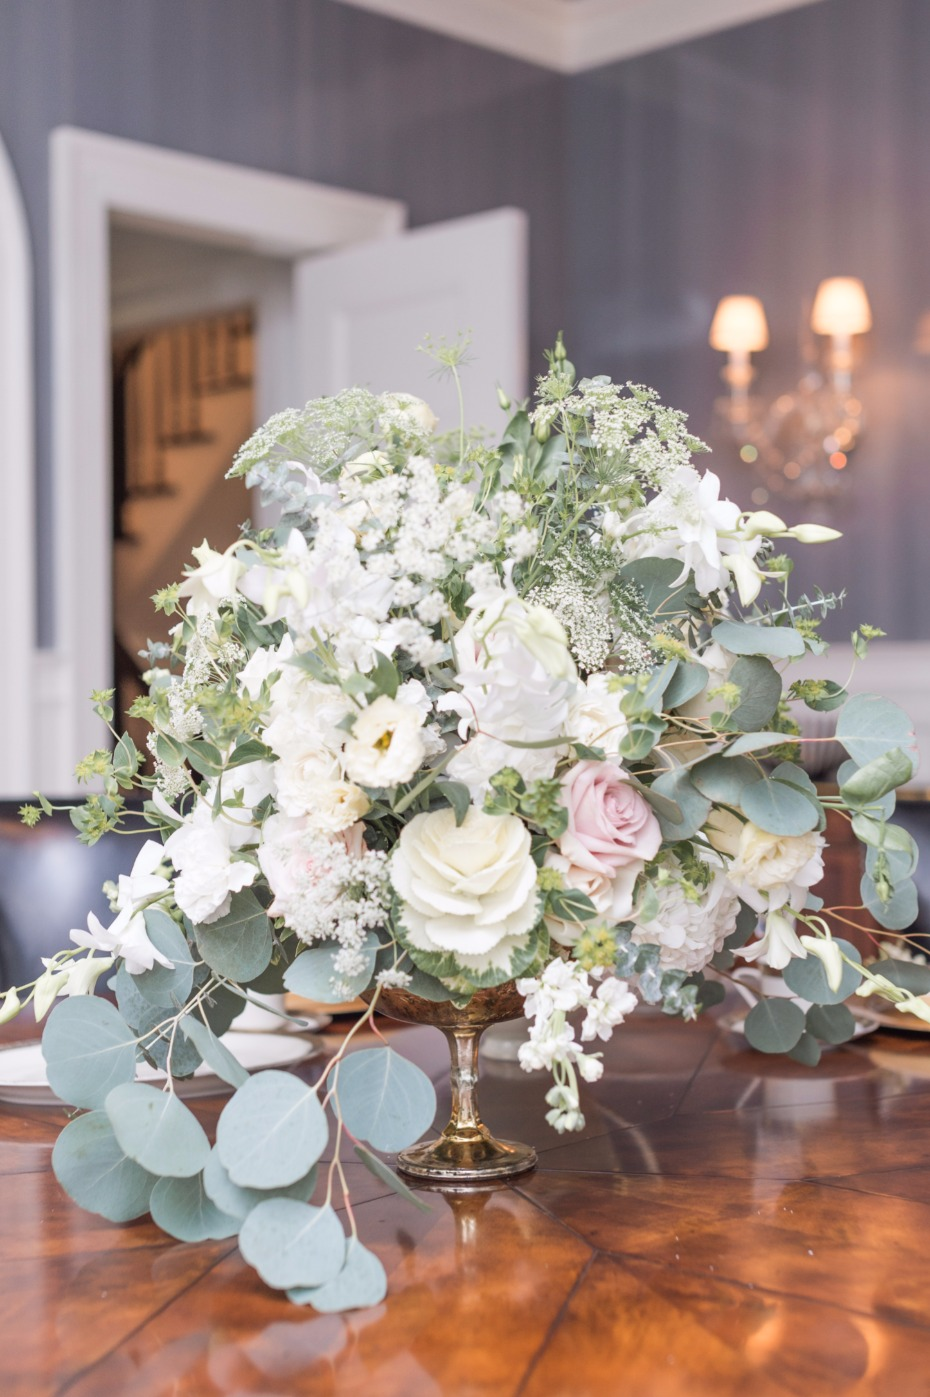 cascading wedding centerpiece in neutral florals and greenery